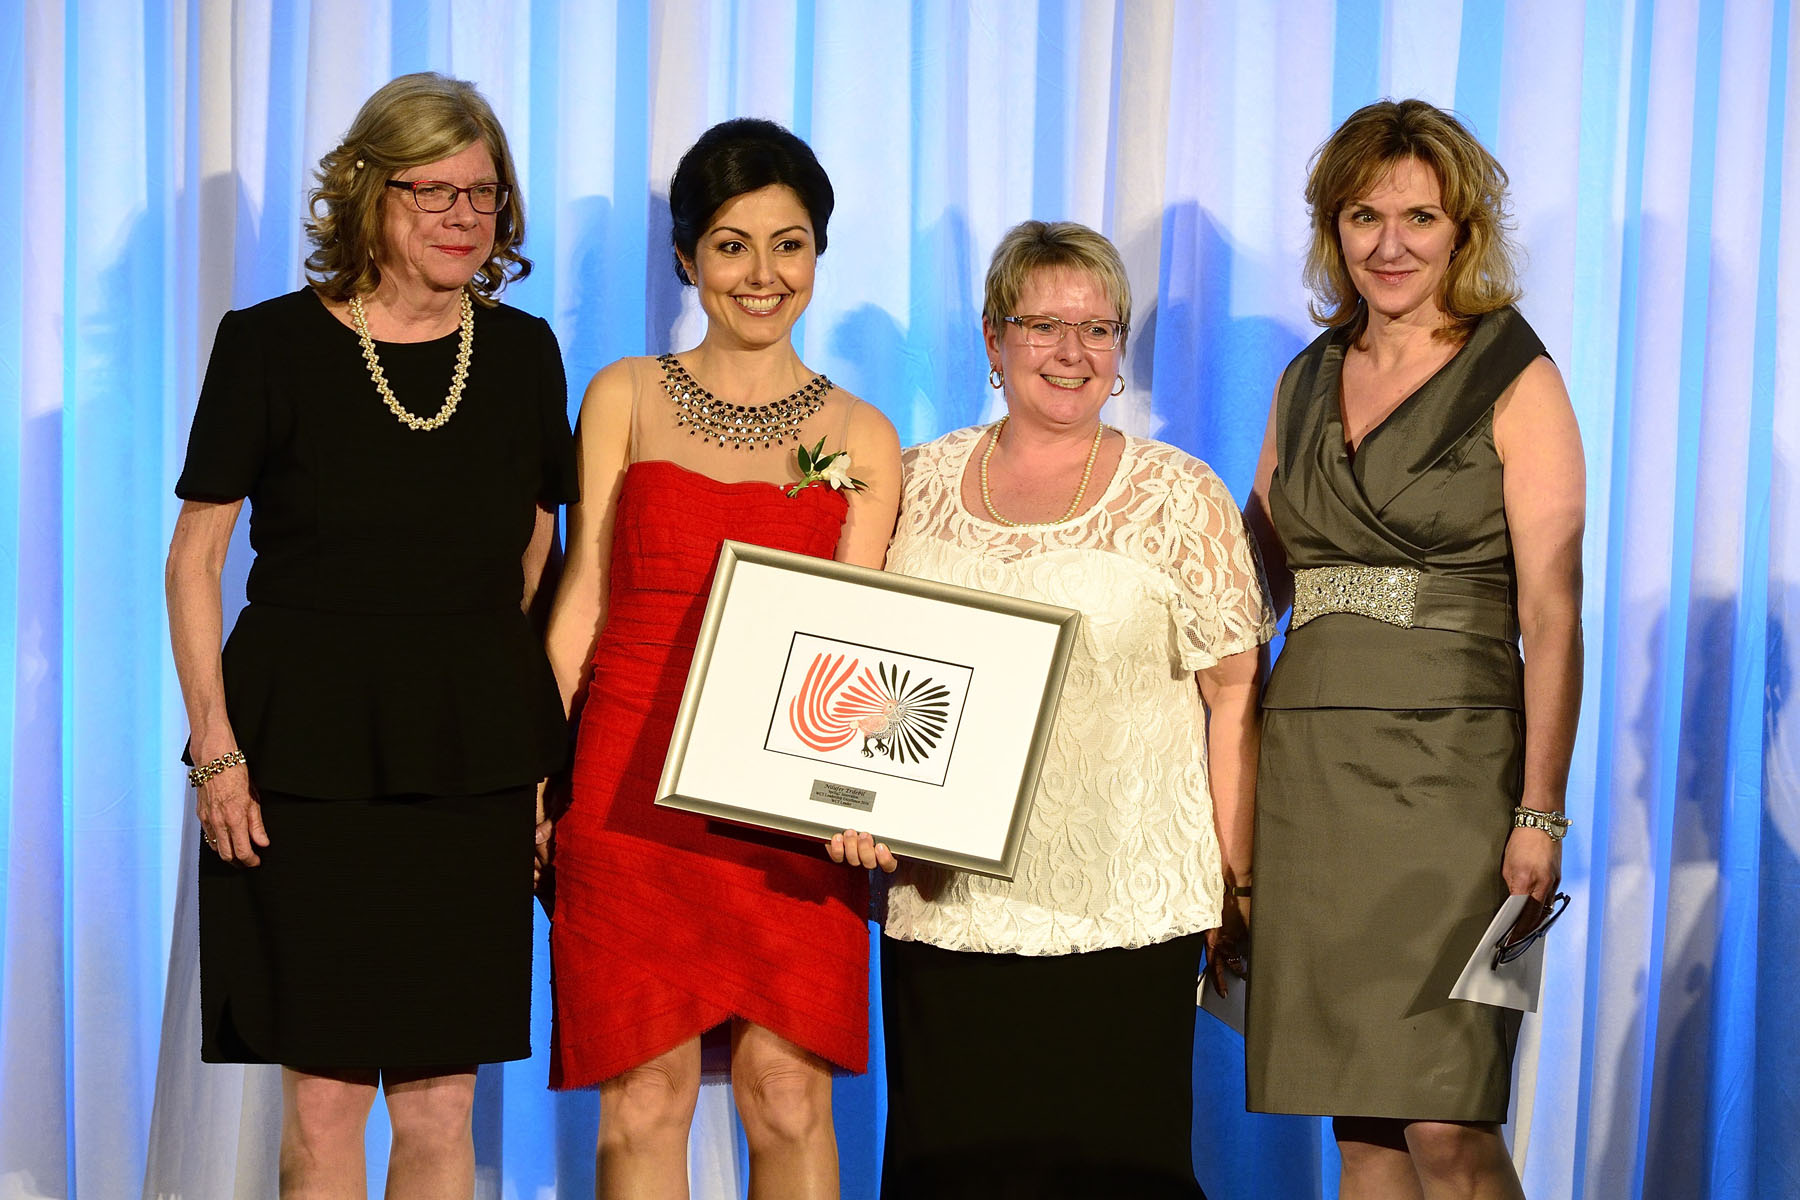 Ms. Nilufer Erdebil, Founder and CEO of Spring2 Innovation, won the award for WCT Leader (pictured centre left).